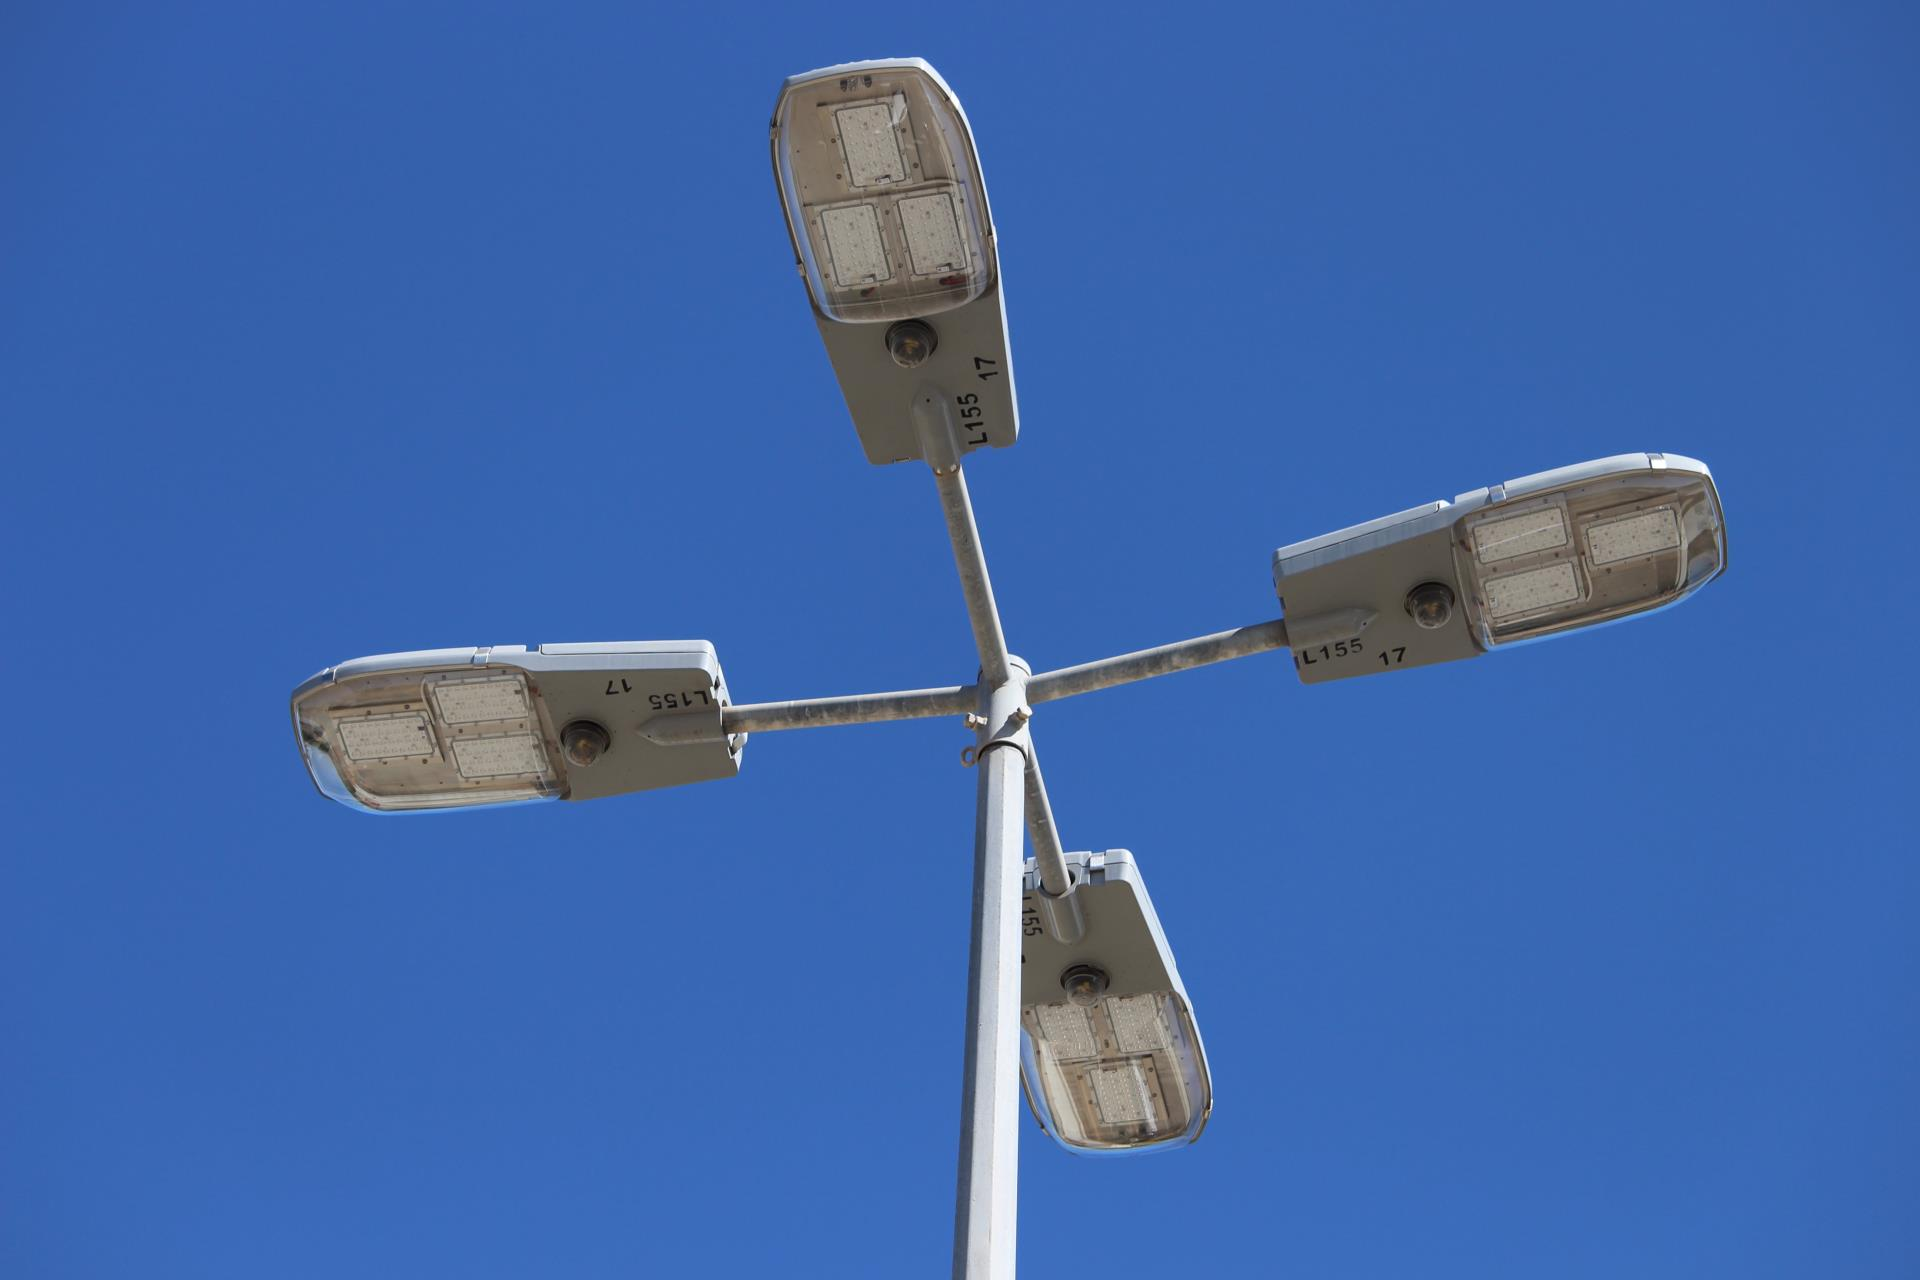 Park lighting upgrades have positive impact on Mullewa